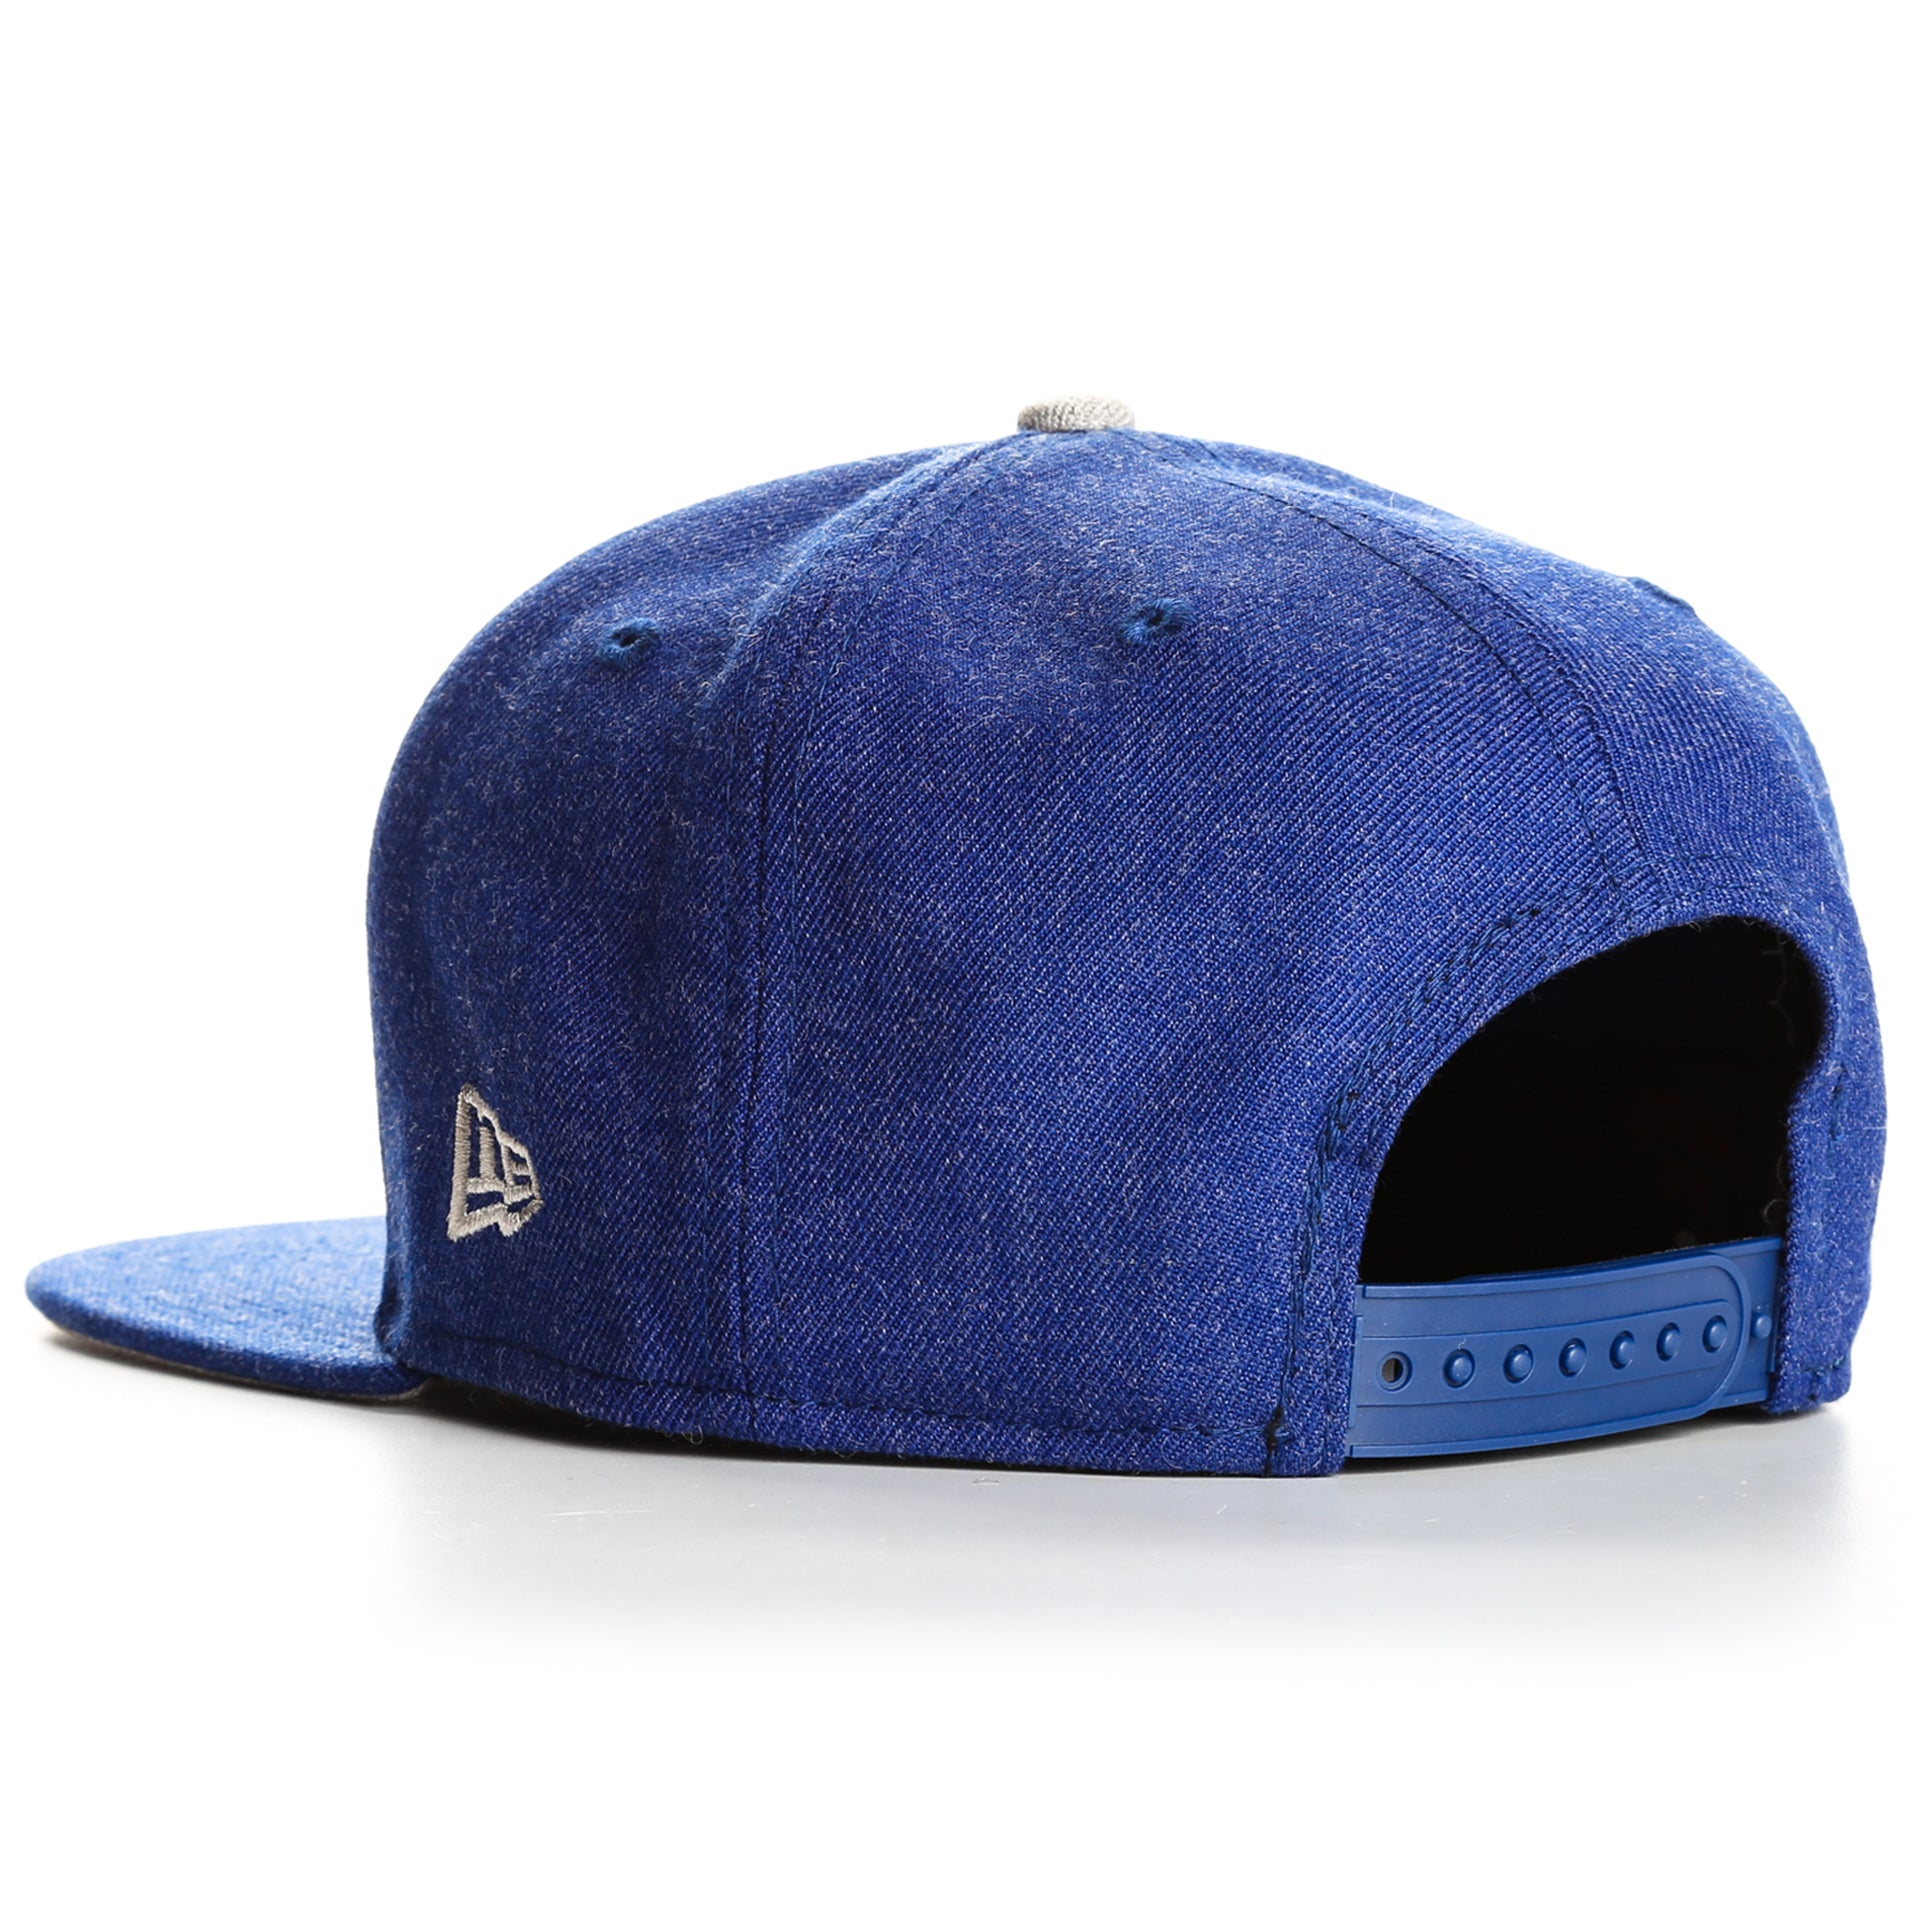 check out 2898f e2df3 New Era 9Fifty Heather Hype Snapback Los Angeles Dodgers D Logo - Heather  Blue